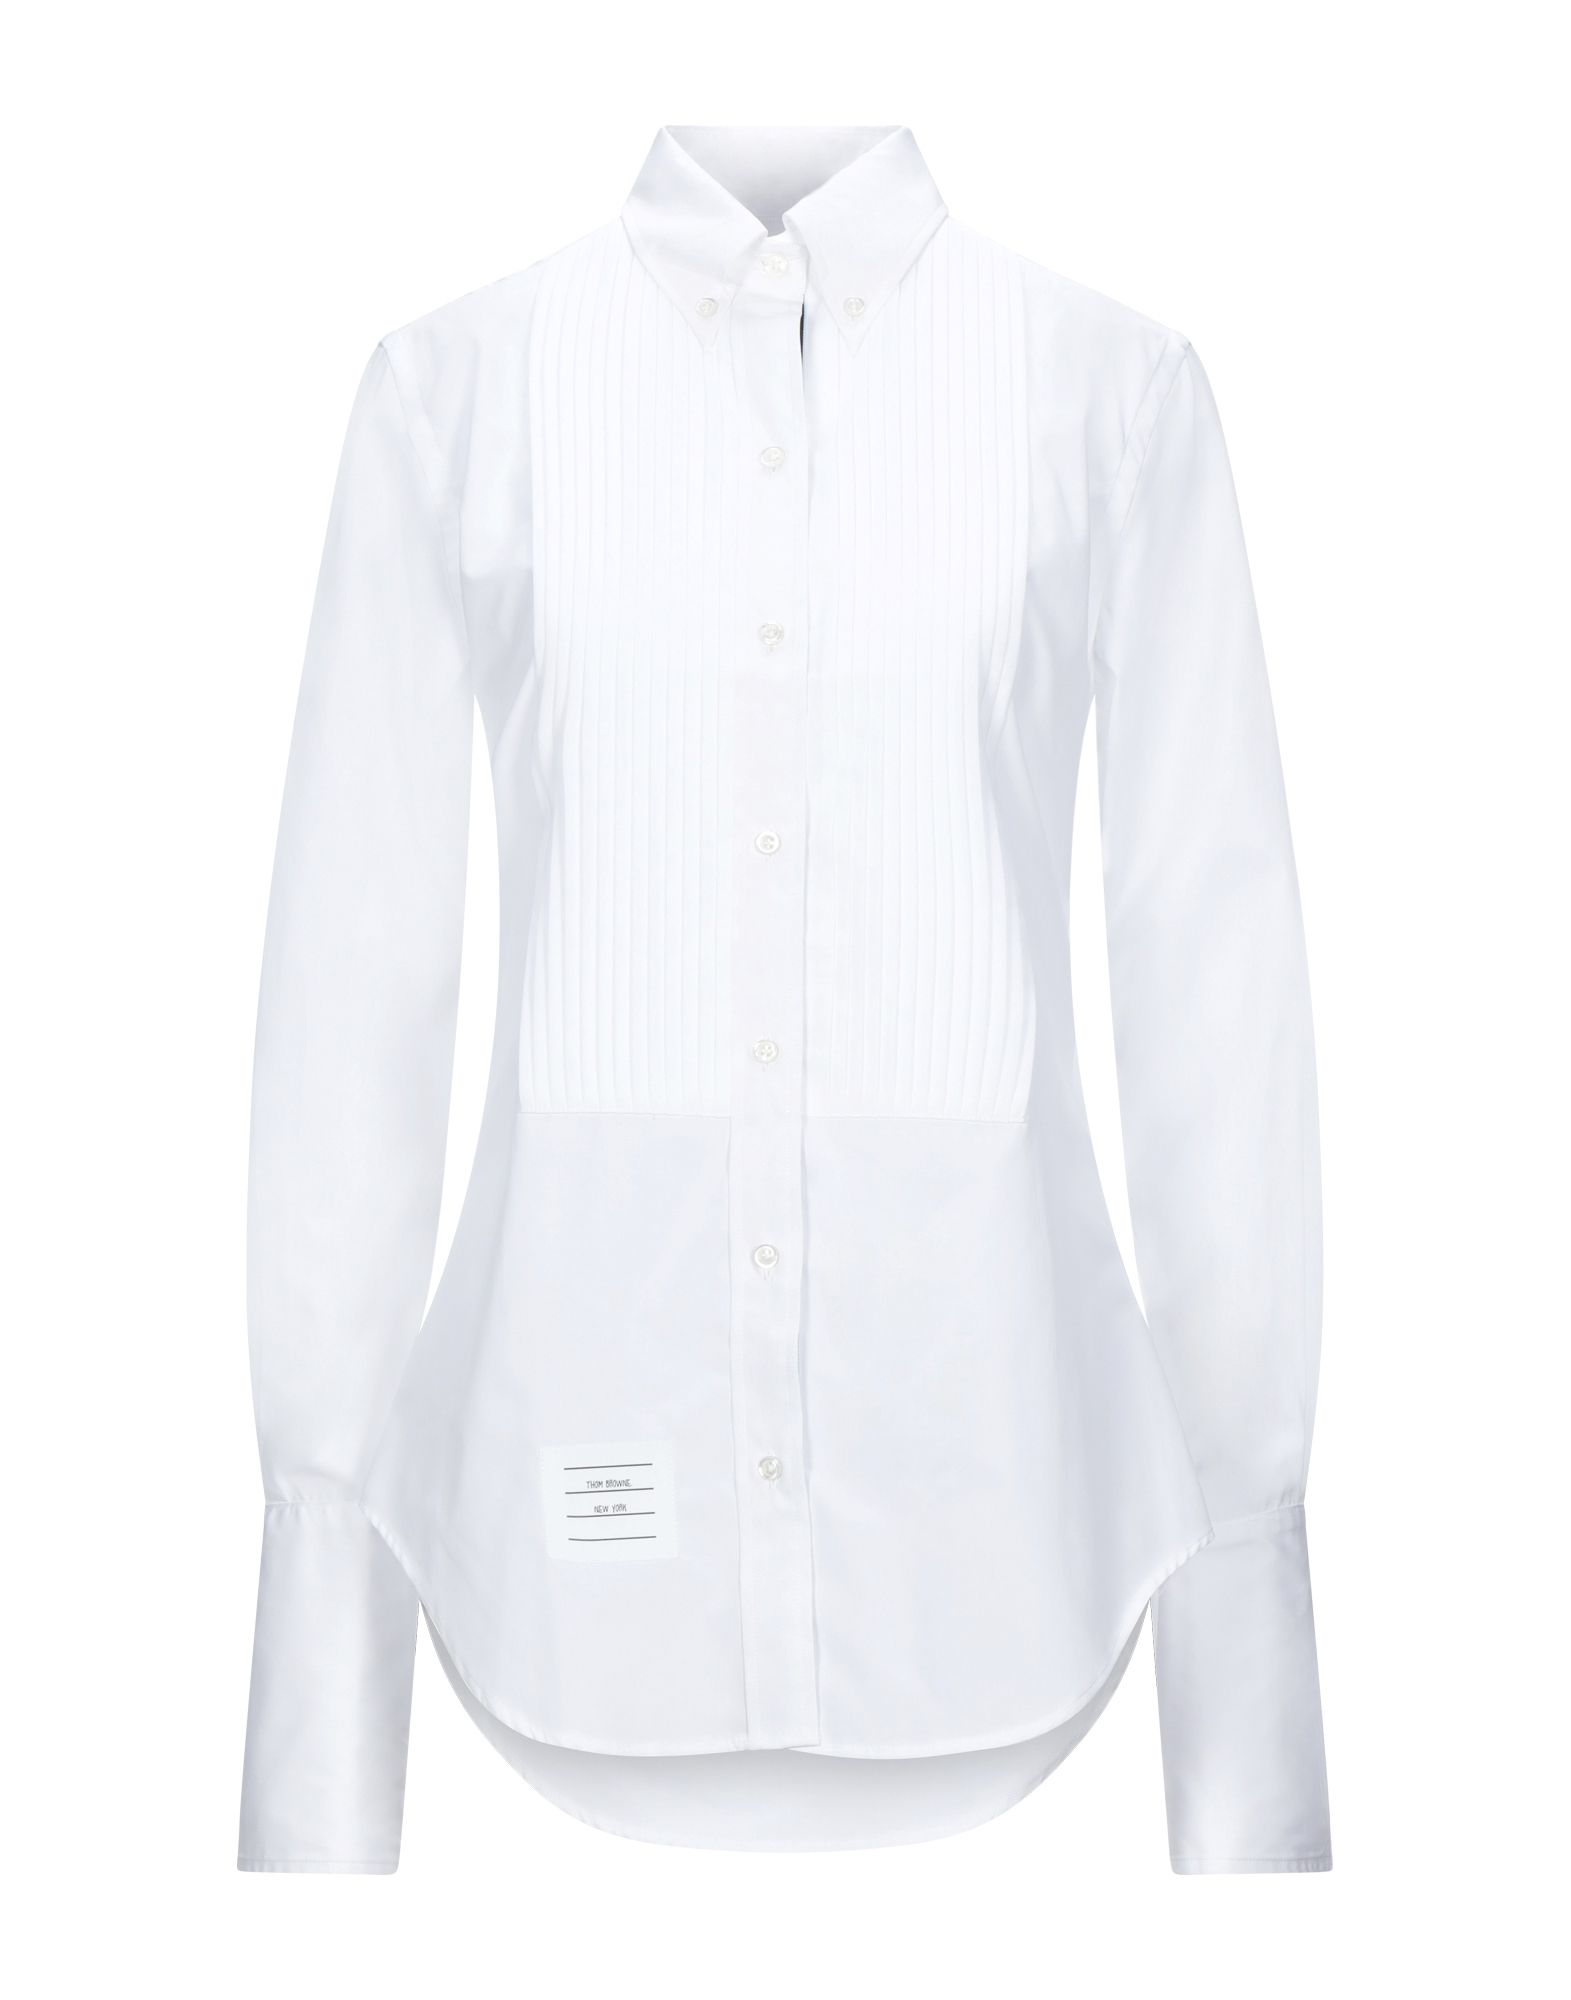 THOM BROWNE Shirts. poplin, logo, solid color, front closure, button closing, long sleeves, buttoned cuffs, button-down collar, no pockets. 100% Cotton